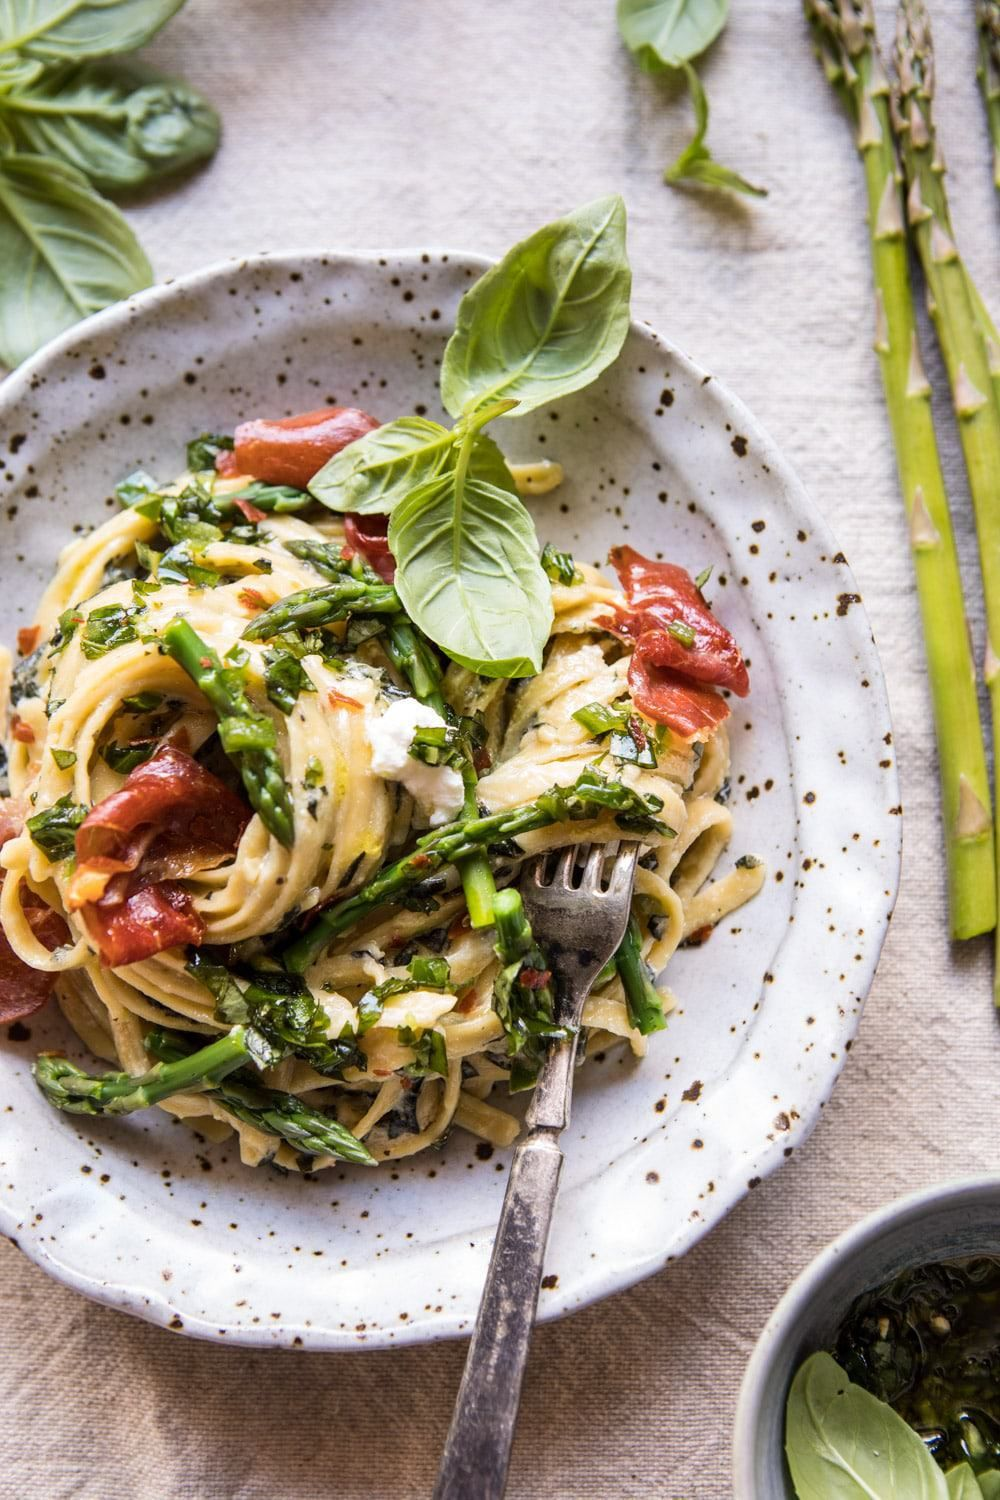 Spicy Pesto, Asparagus, and Ricotta Pasta with Crispy Prosciutto. – Yummy drinks